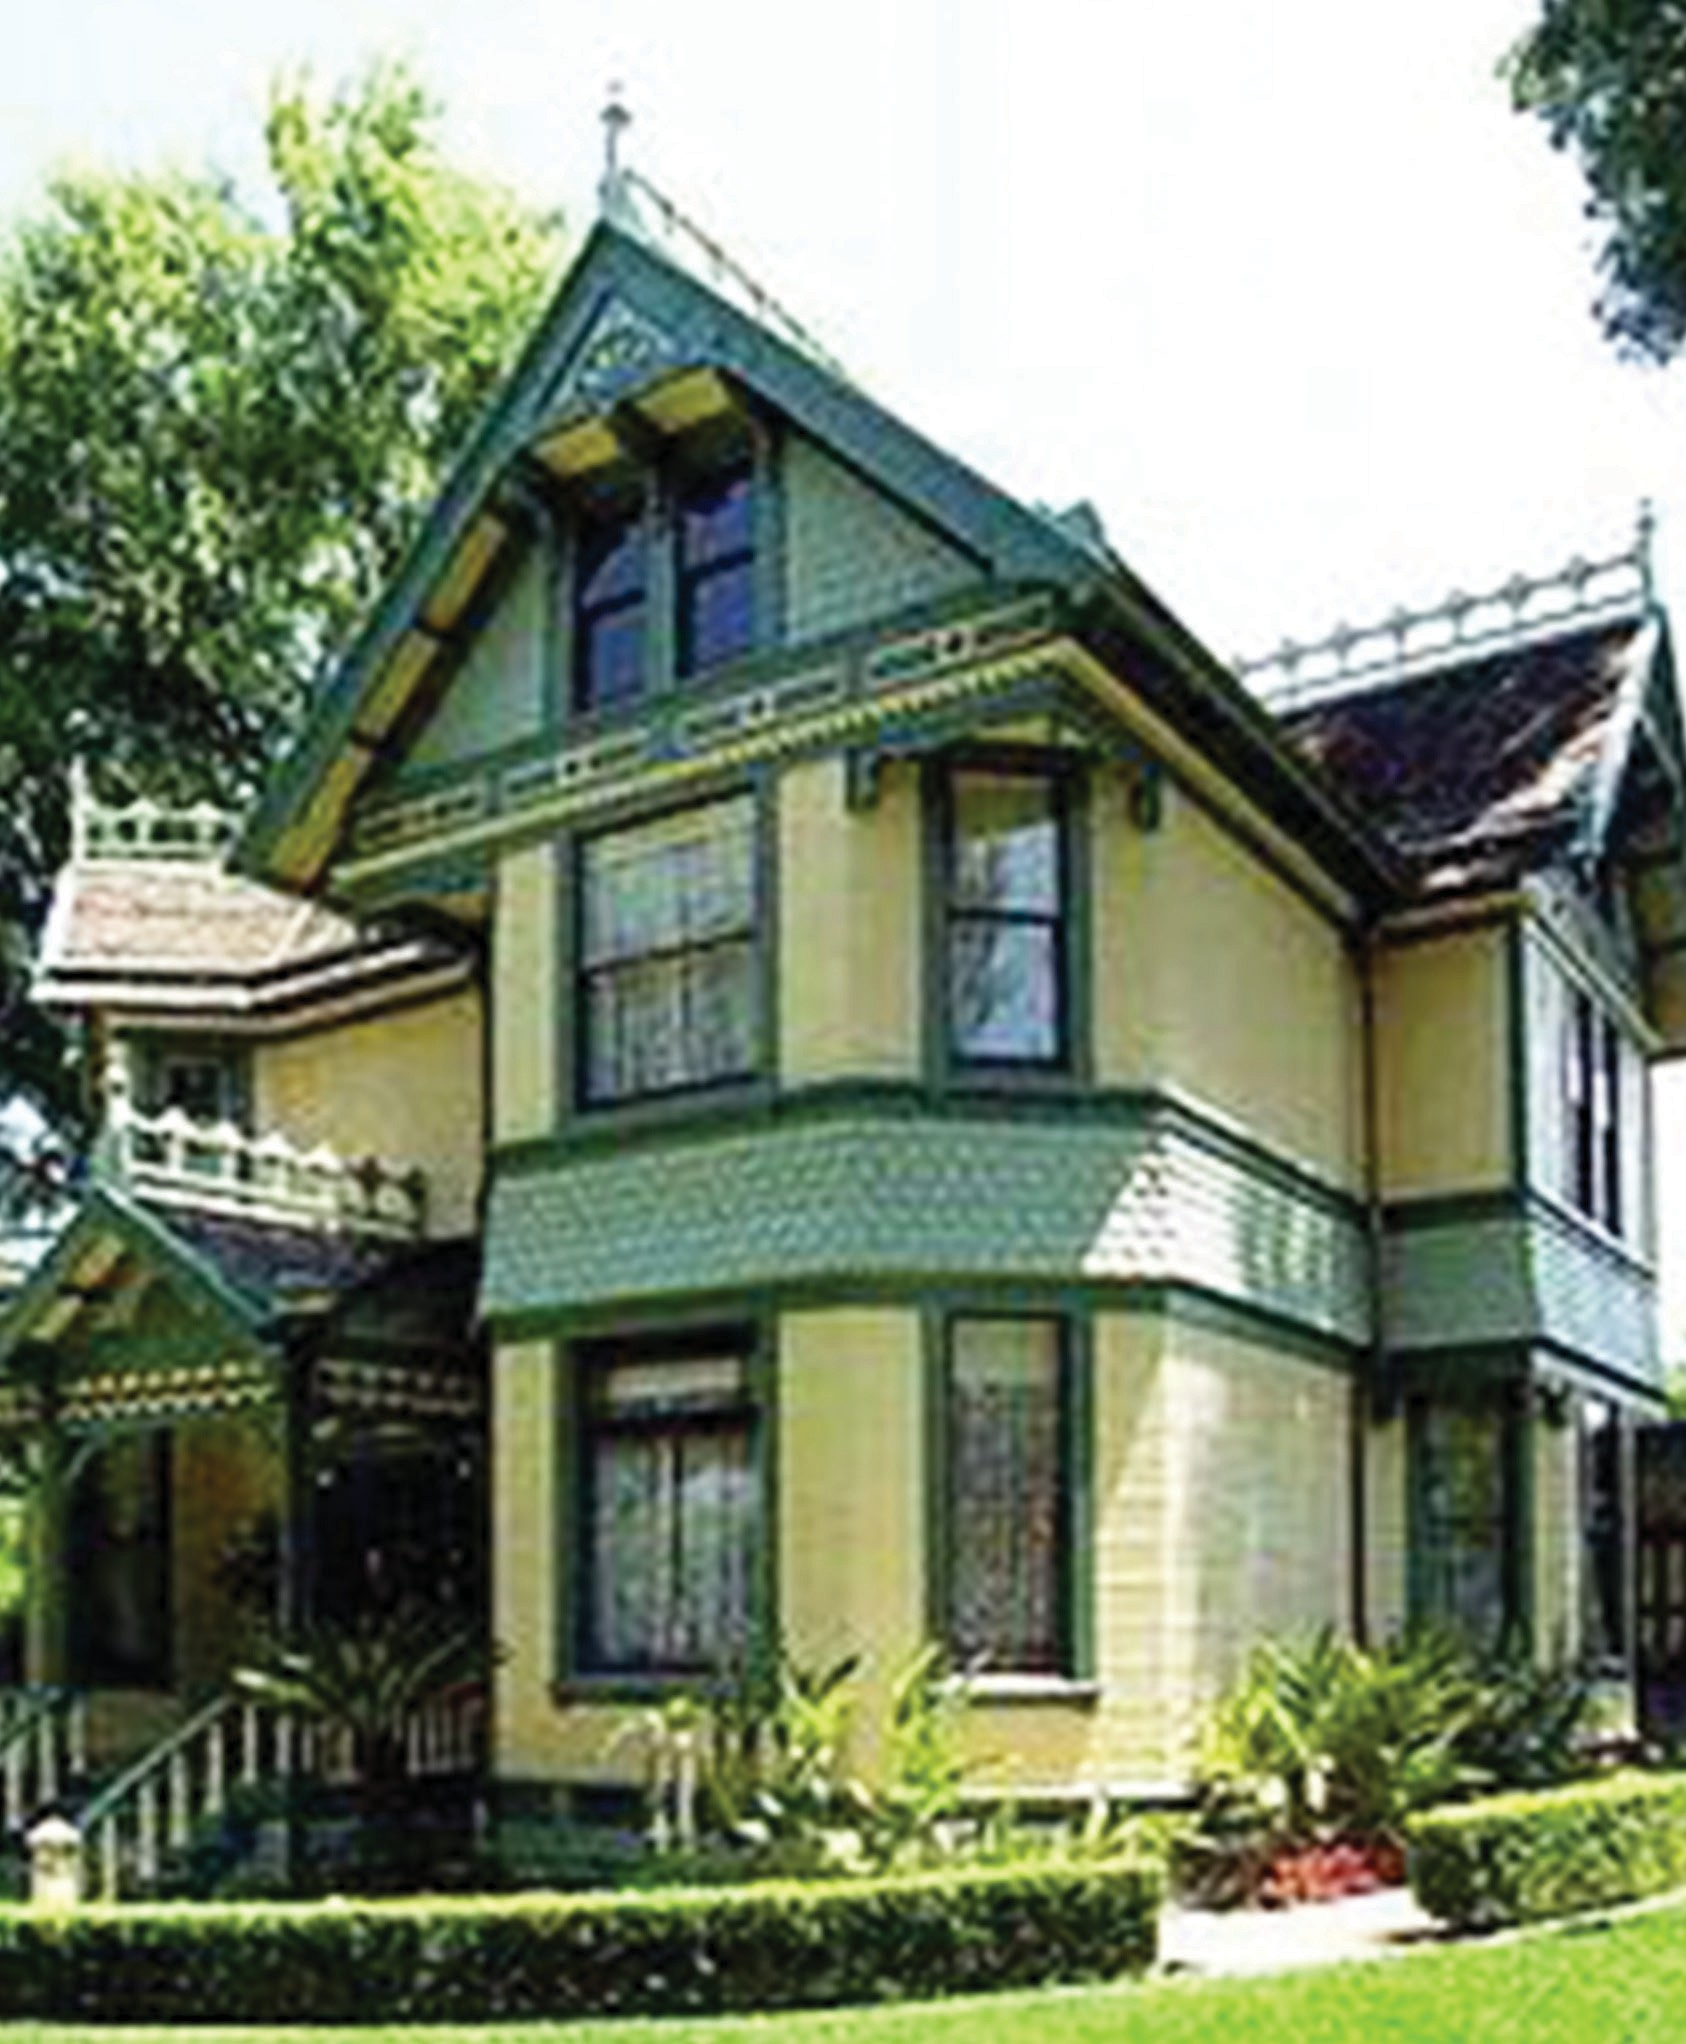 Escondido's Beach House, built in 1896 is the city's oldest home.